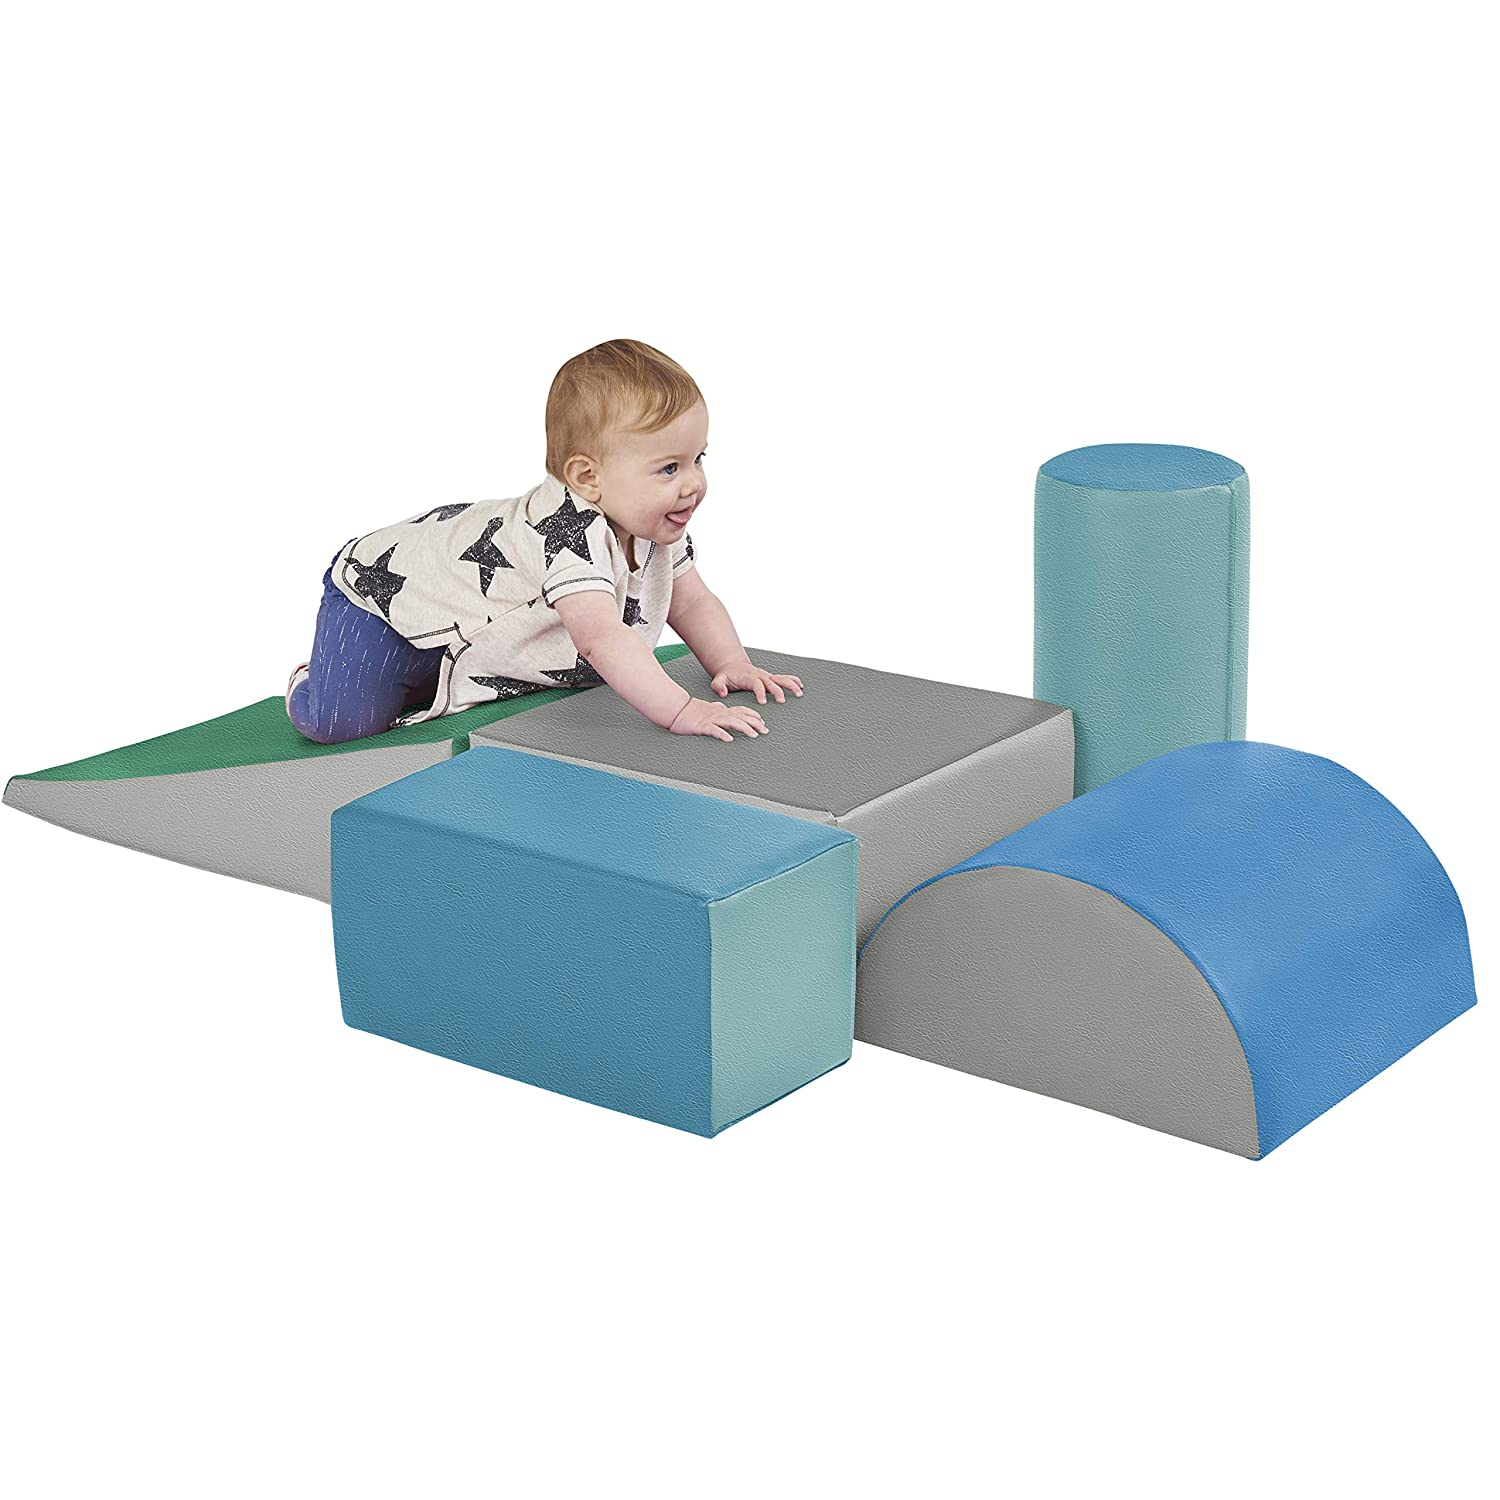 ECR4Kids ELR-12683F-CT SoftZone Climb and Crawl Activity Play Set, Lightweight Foam Shapes for Climbing, Crawling and Sliding, Safe Foam Playset for Toddlers and Preschoolers, 5-Piece Set, Contemporary